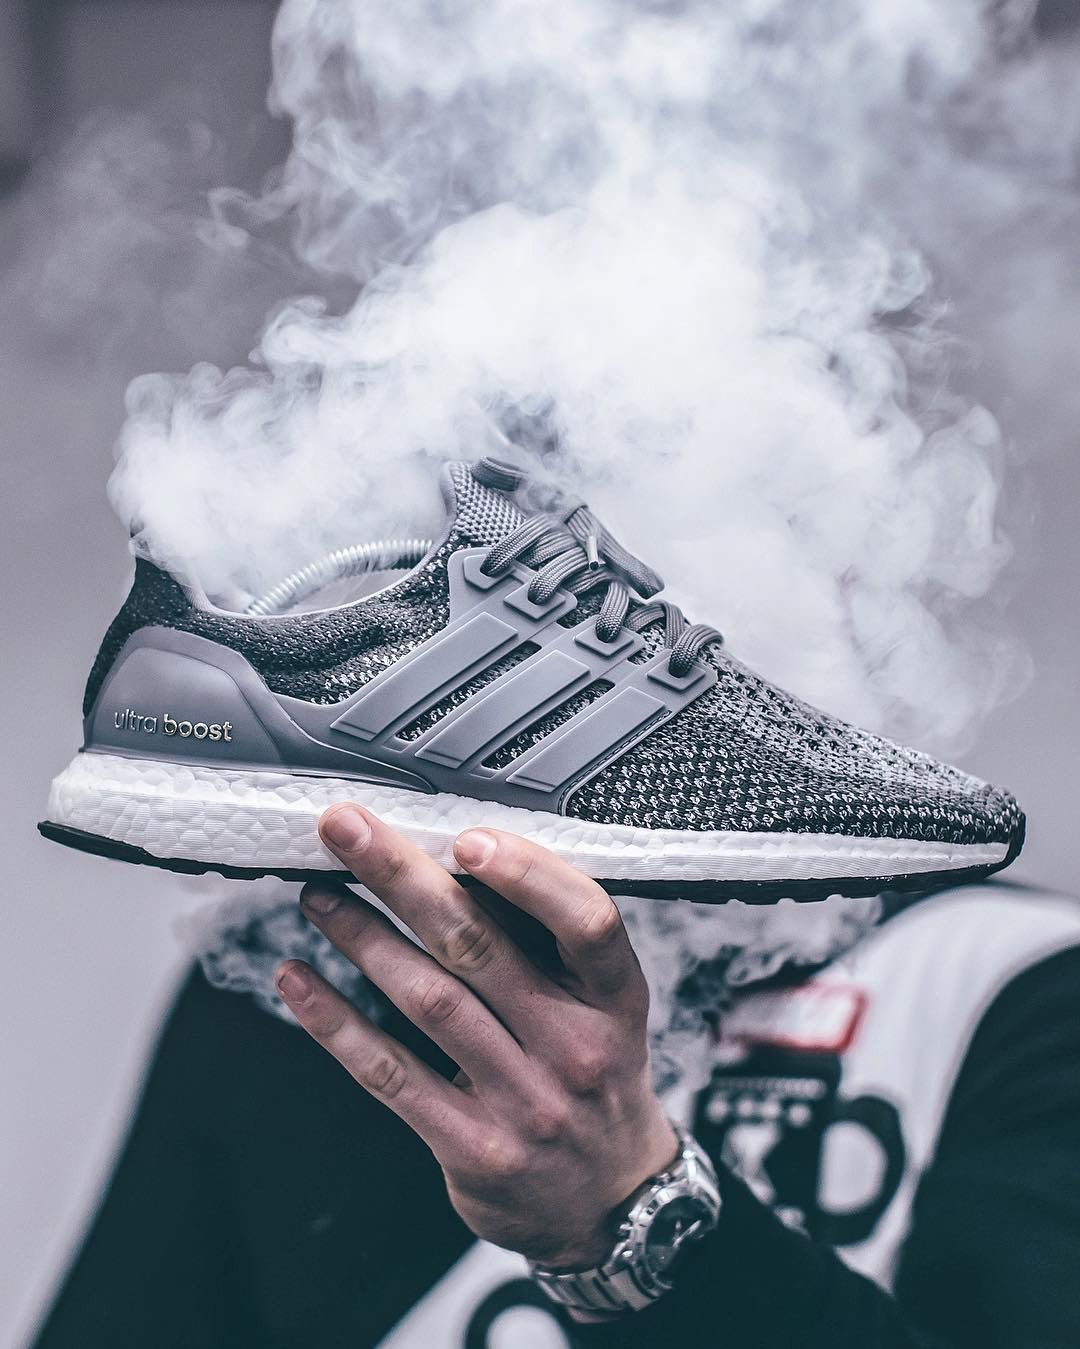 83bfbff7247ce Adidas Ultra Boost 2.0 - Mystery Grey customized - 2016 (by kaczy  ) Clean  and care for your sneakers with shoe trees by Sole Trees  Sneakers   ShoeTrees ...